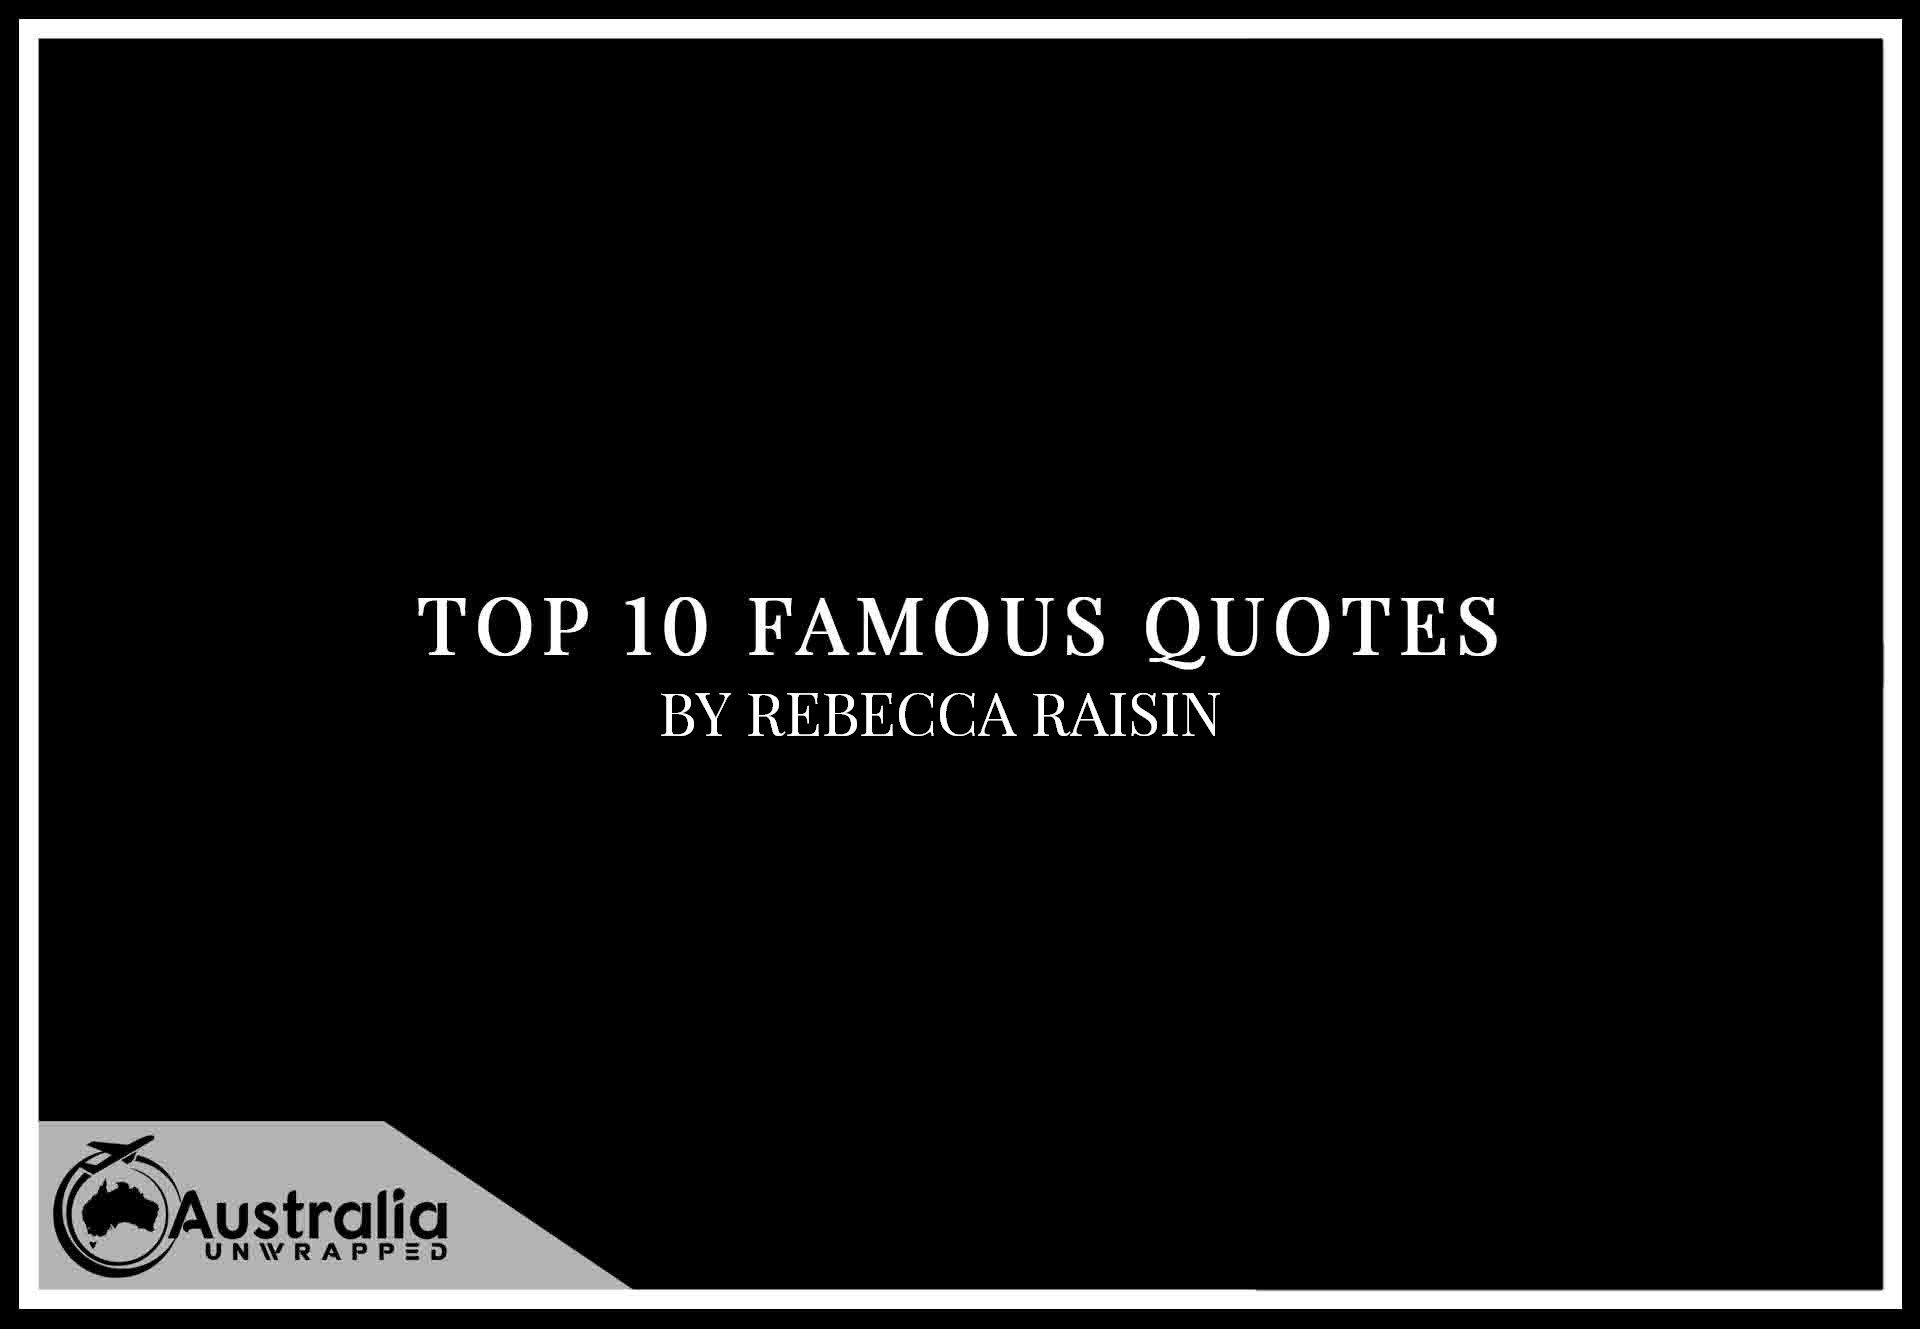 Top 10 Famous Quotes by Author Rebecca Raisin